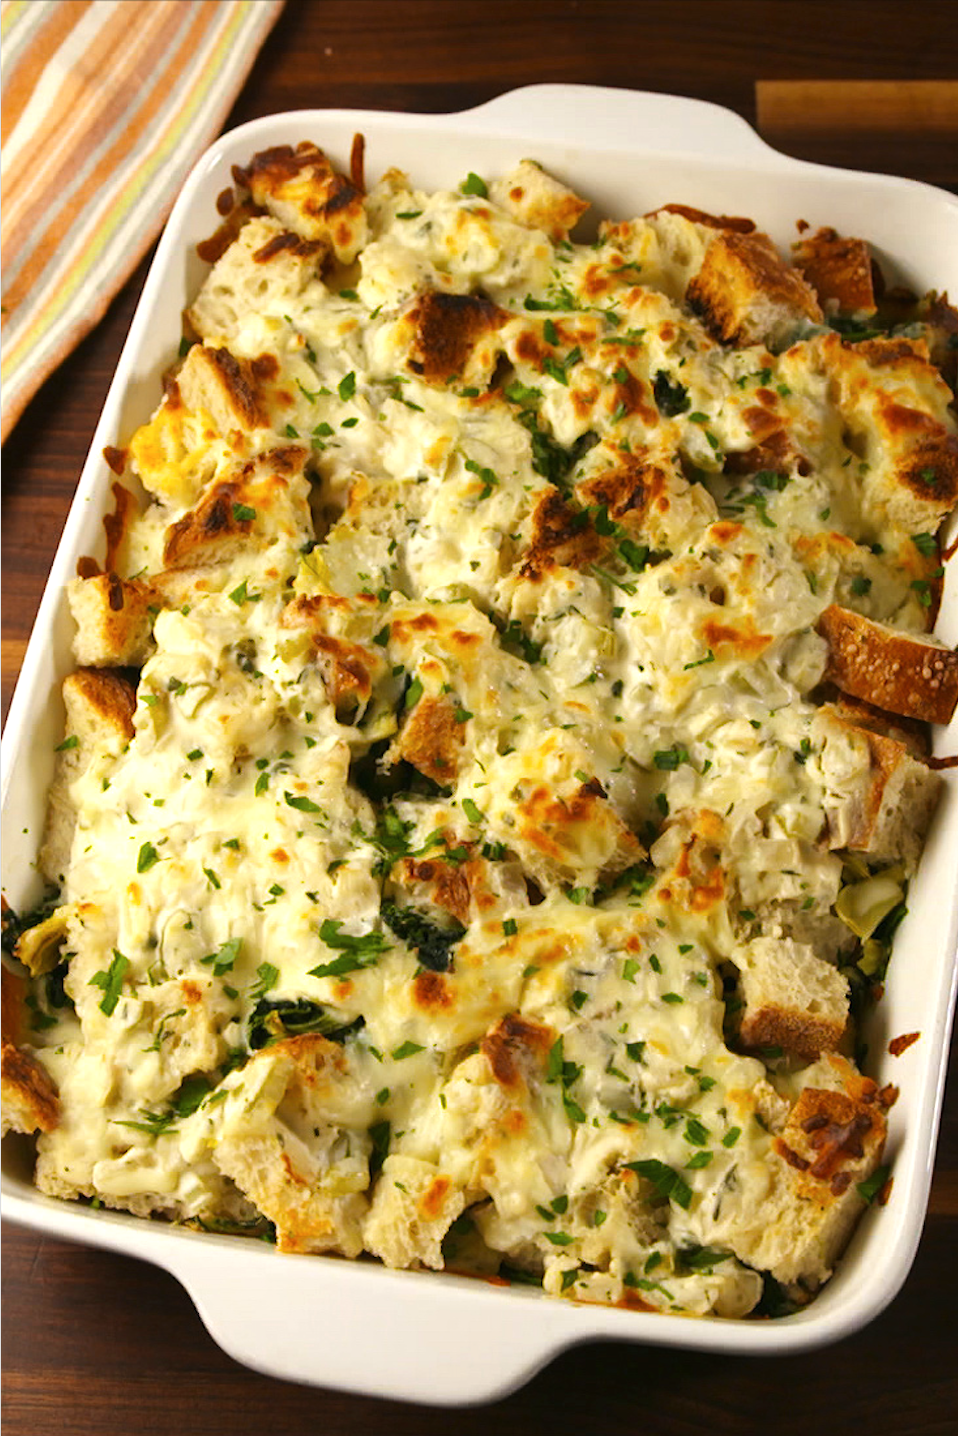 """<p>This is what your stuffing has been missing.</p><p>Get the recipe from <a href=""""https://www.delish.com/cooking/recipe-ideas/recipes/a56480/spinach-artichoke-stuffing-recipe/"""" rel=""""nofollow noopener"""" target=""""_blank"""" data-ylk=""""slk:Delish"""" class=""""link rapid-noclick-resp"""">Delish</a>. </p>"""